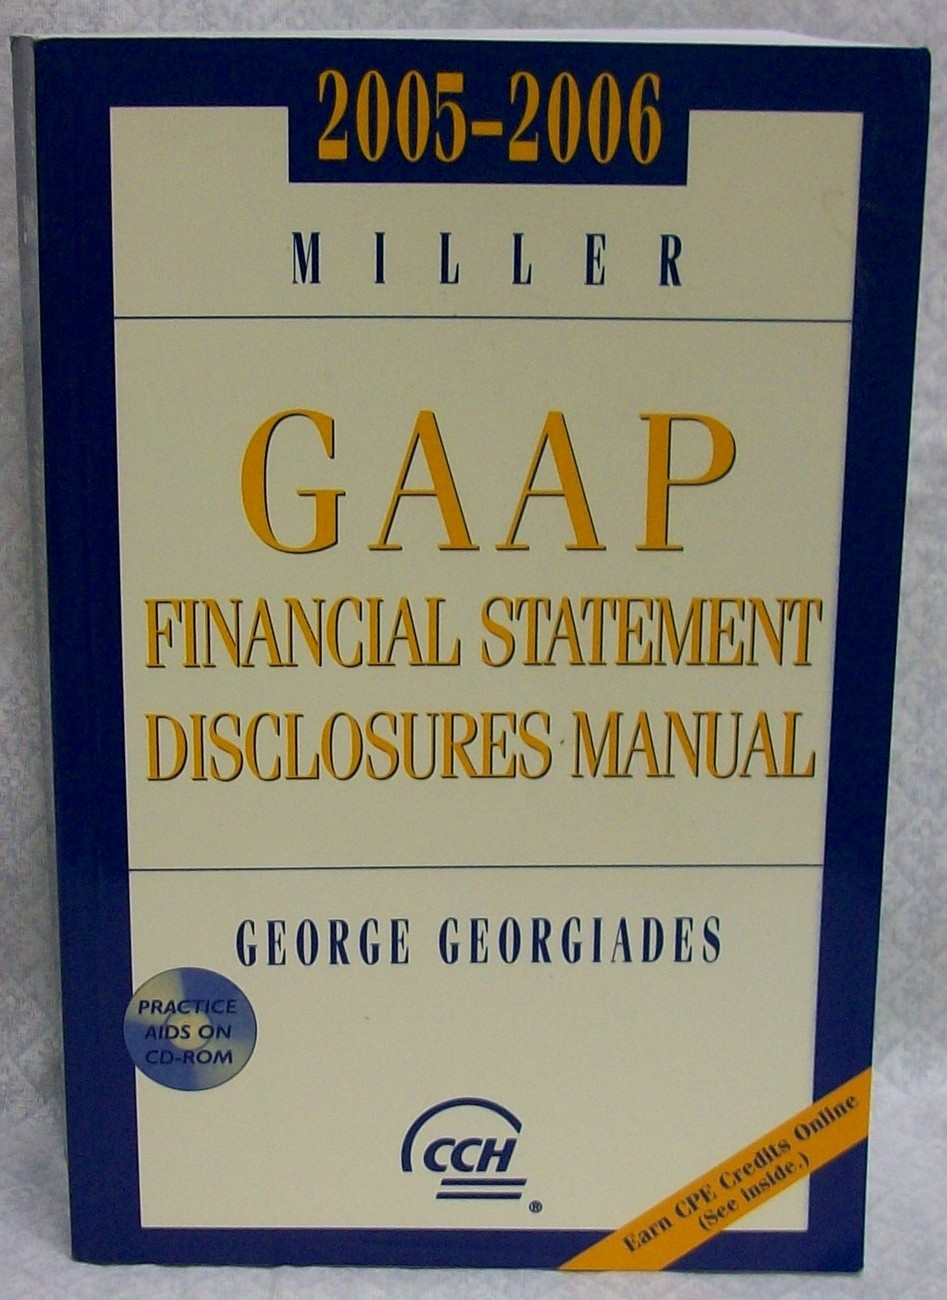 GAAP Financial Statement Disclosures Manual